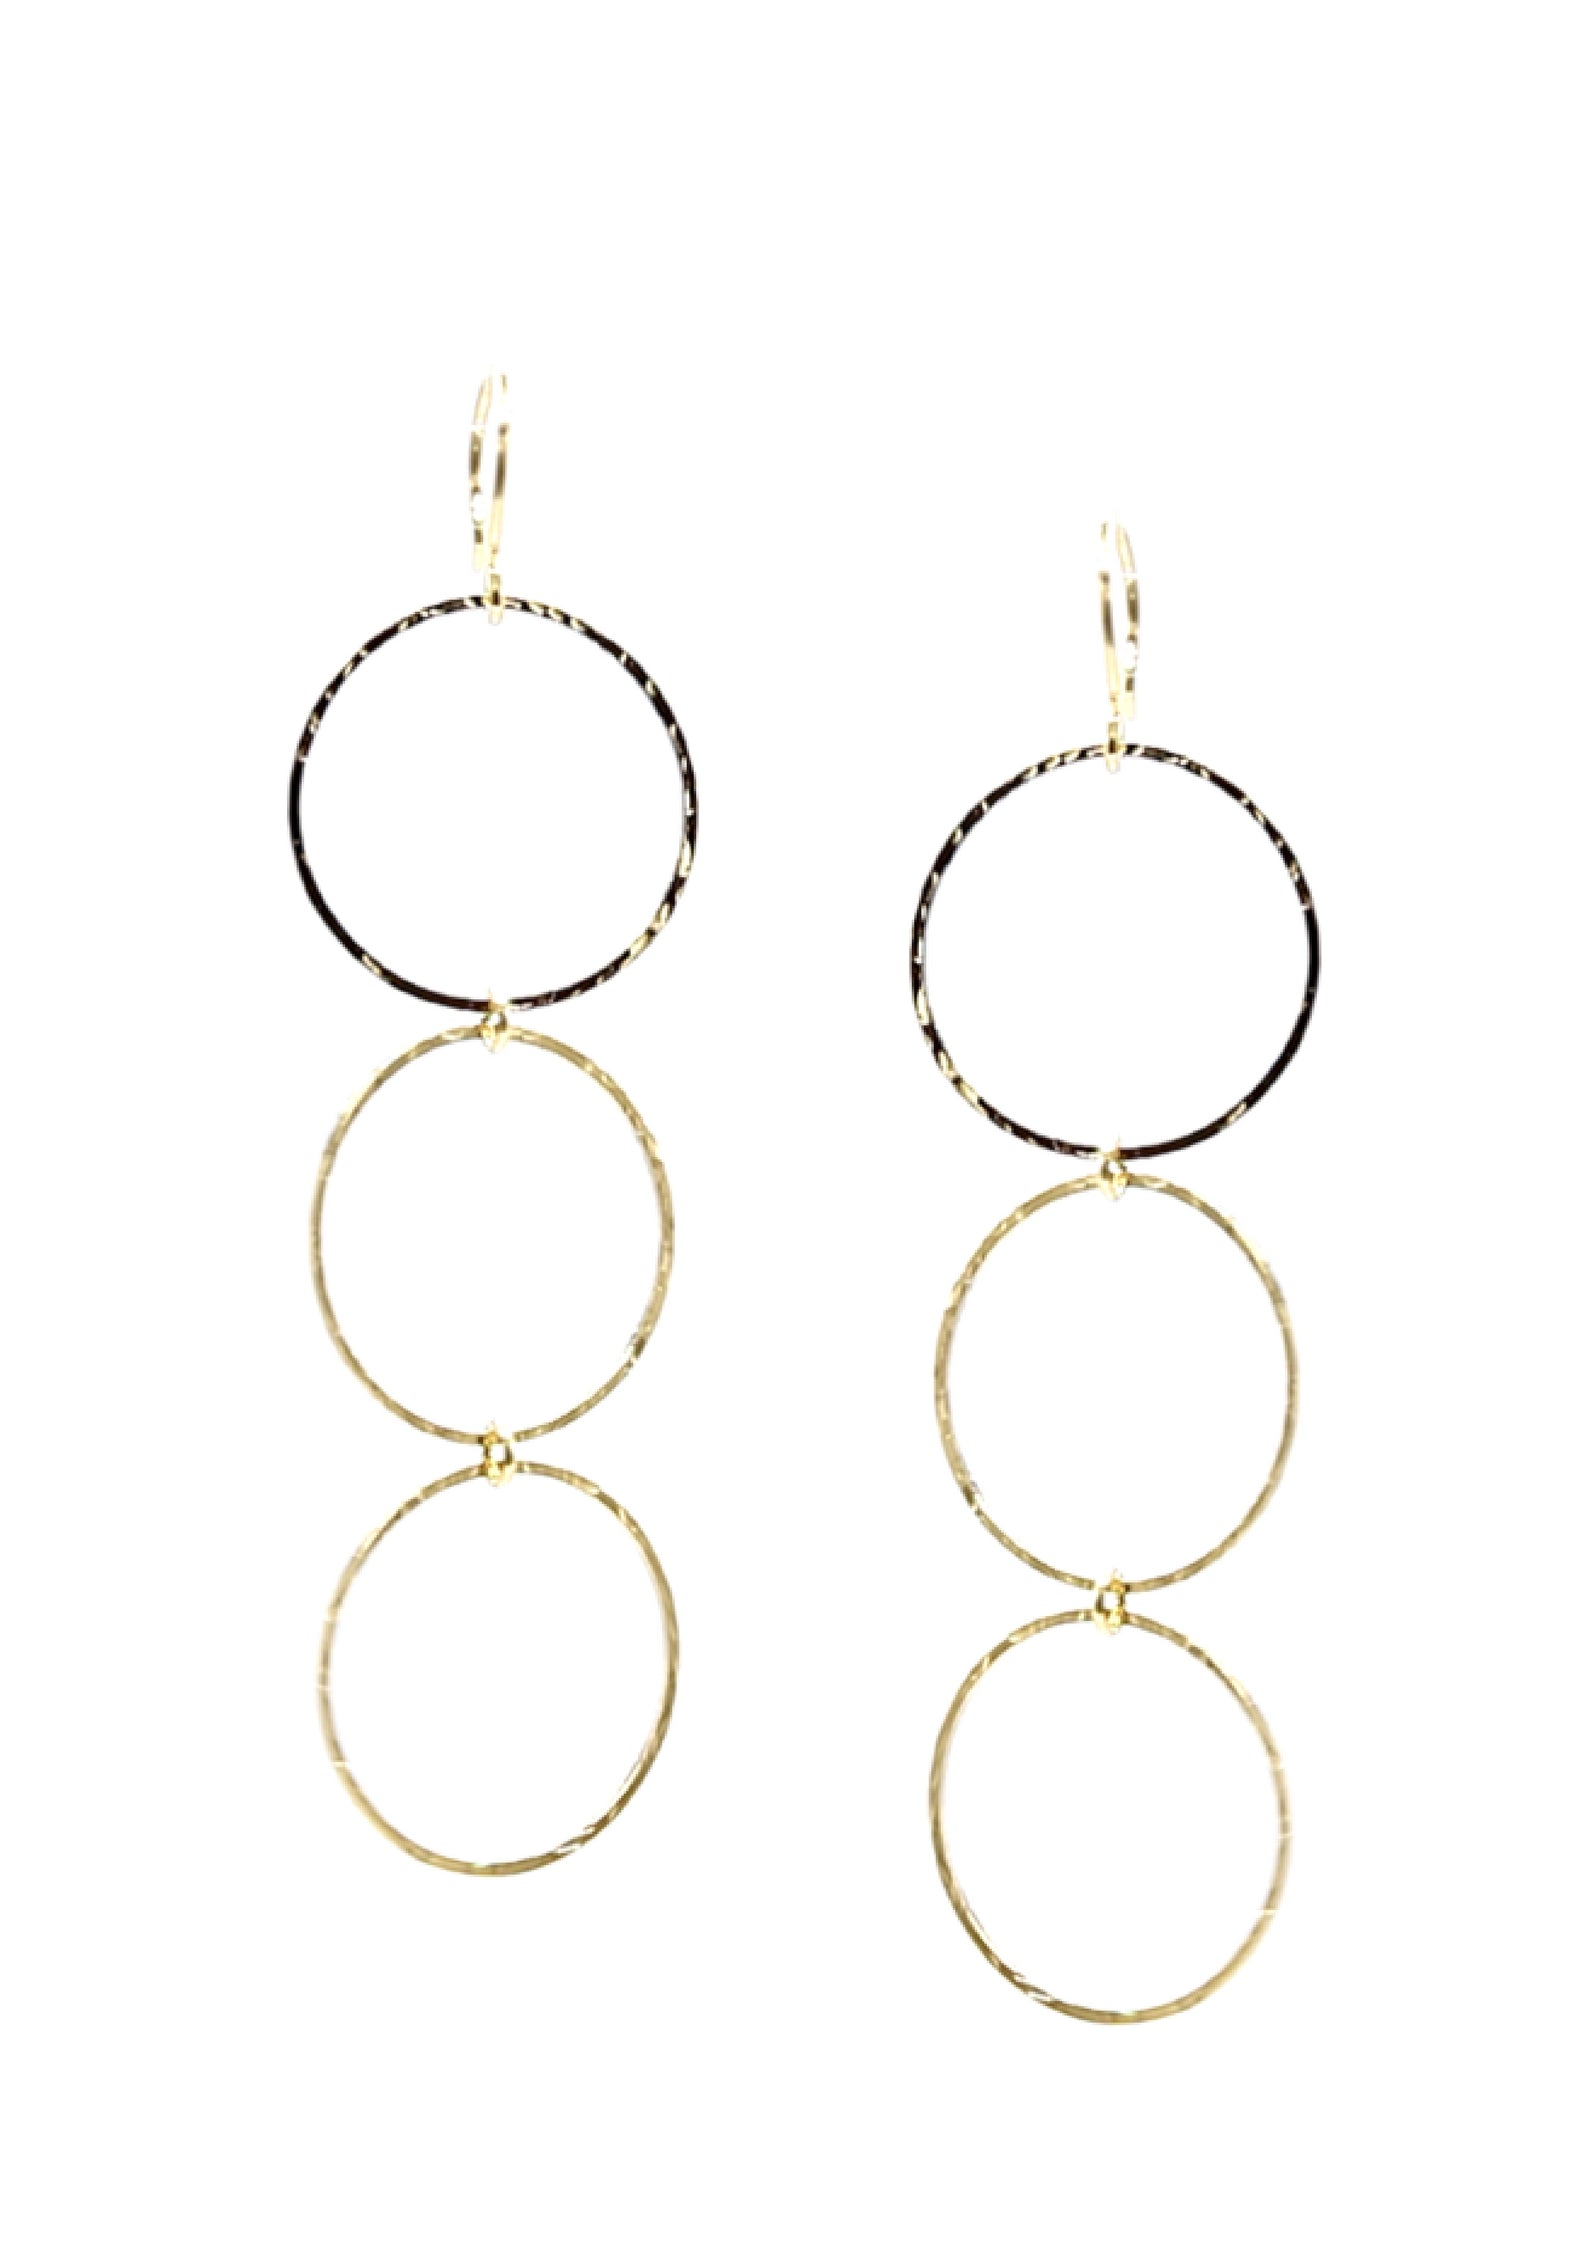 Gold Triple Halo Lindy Hoop Earrings-Earrings-JAREDJAMIN Jewelry Online-JARED JAMIN